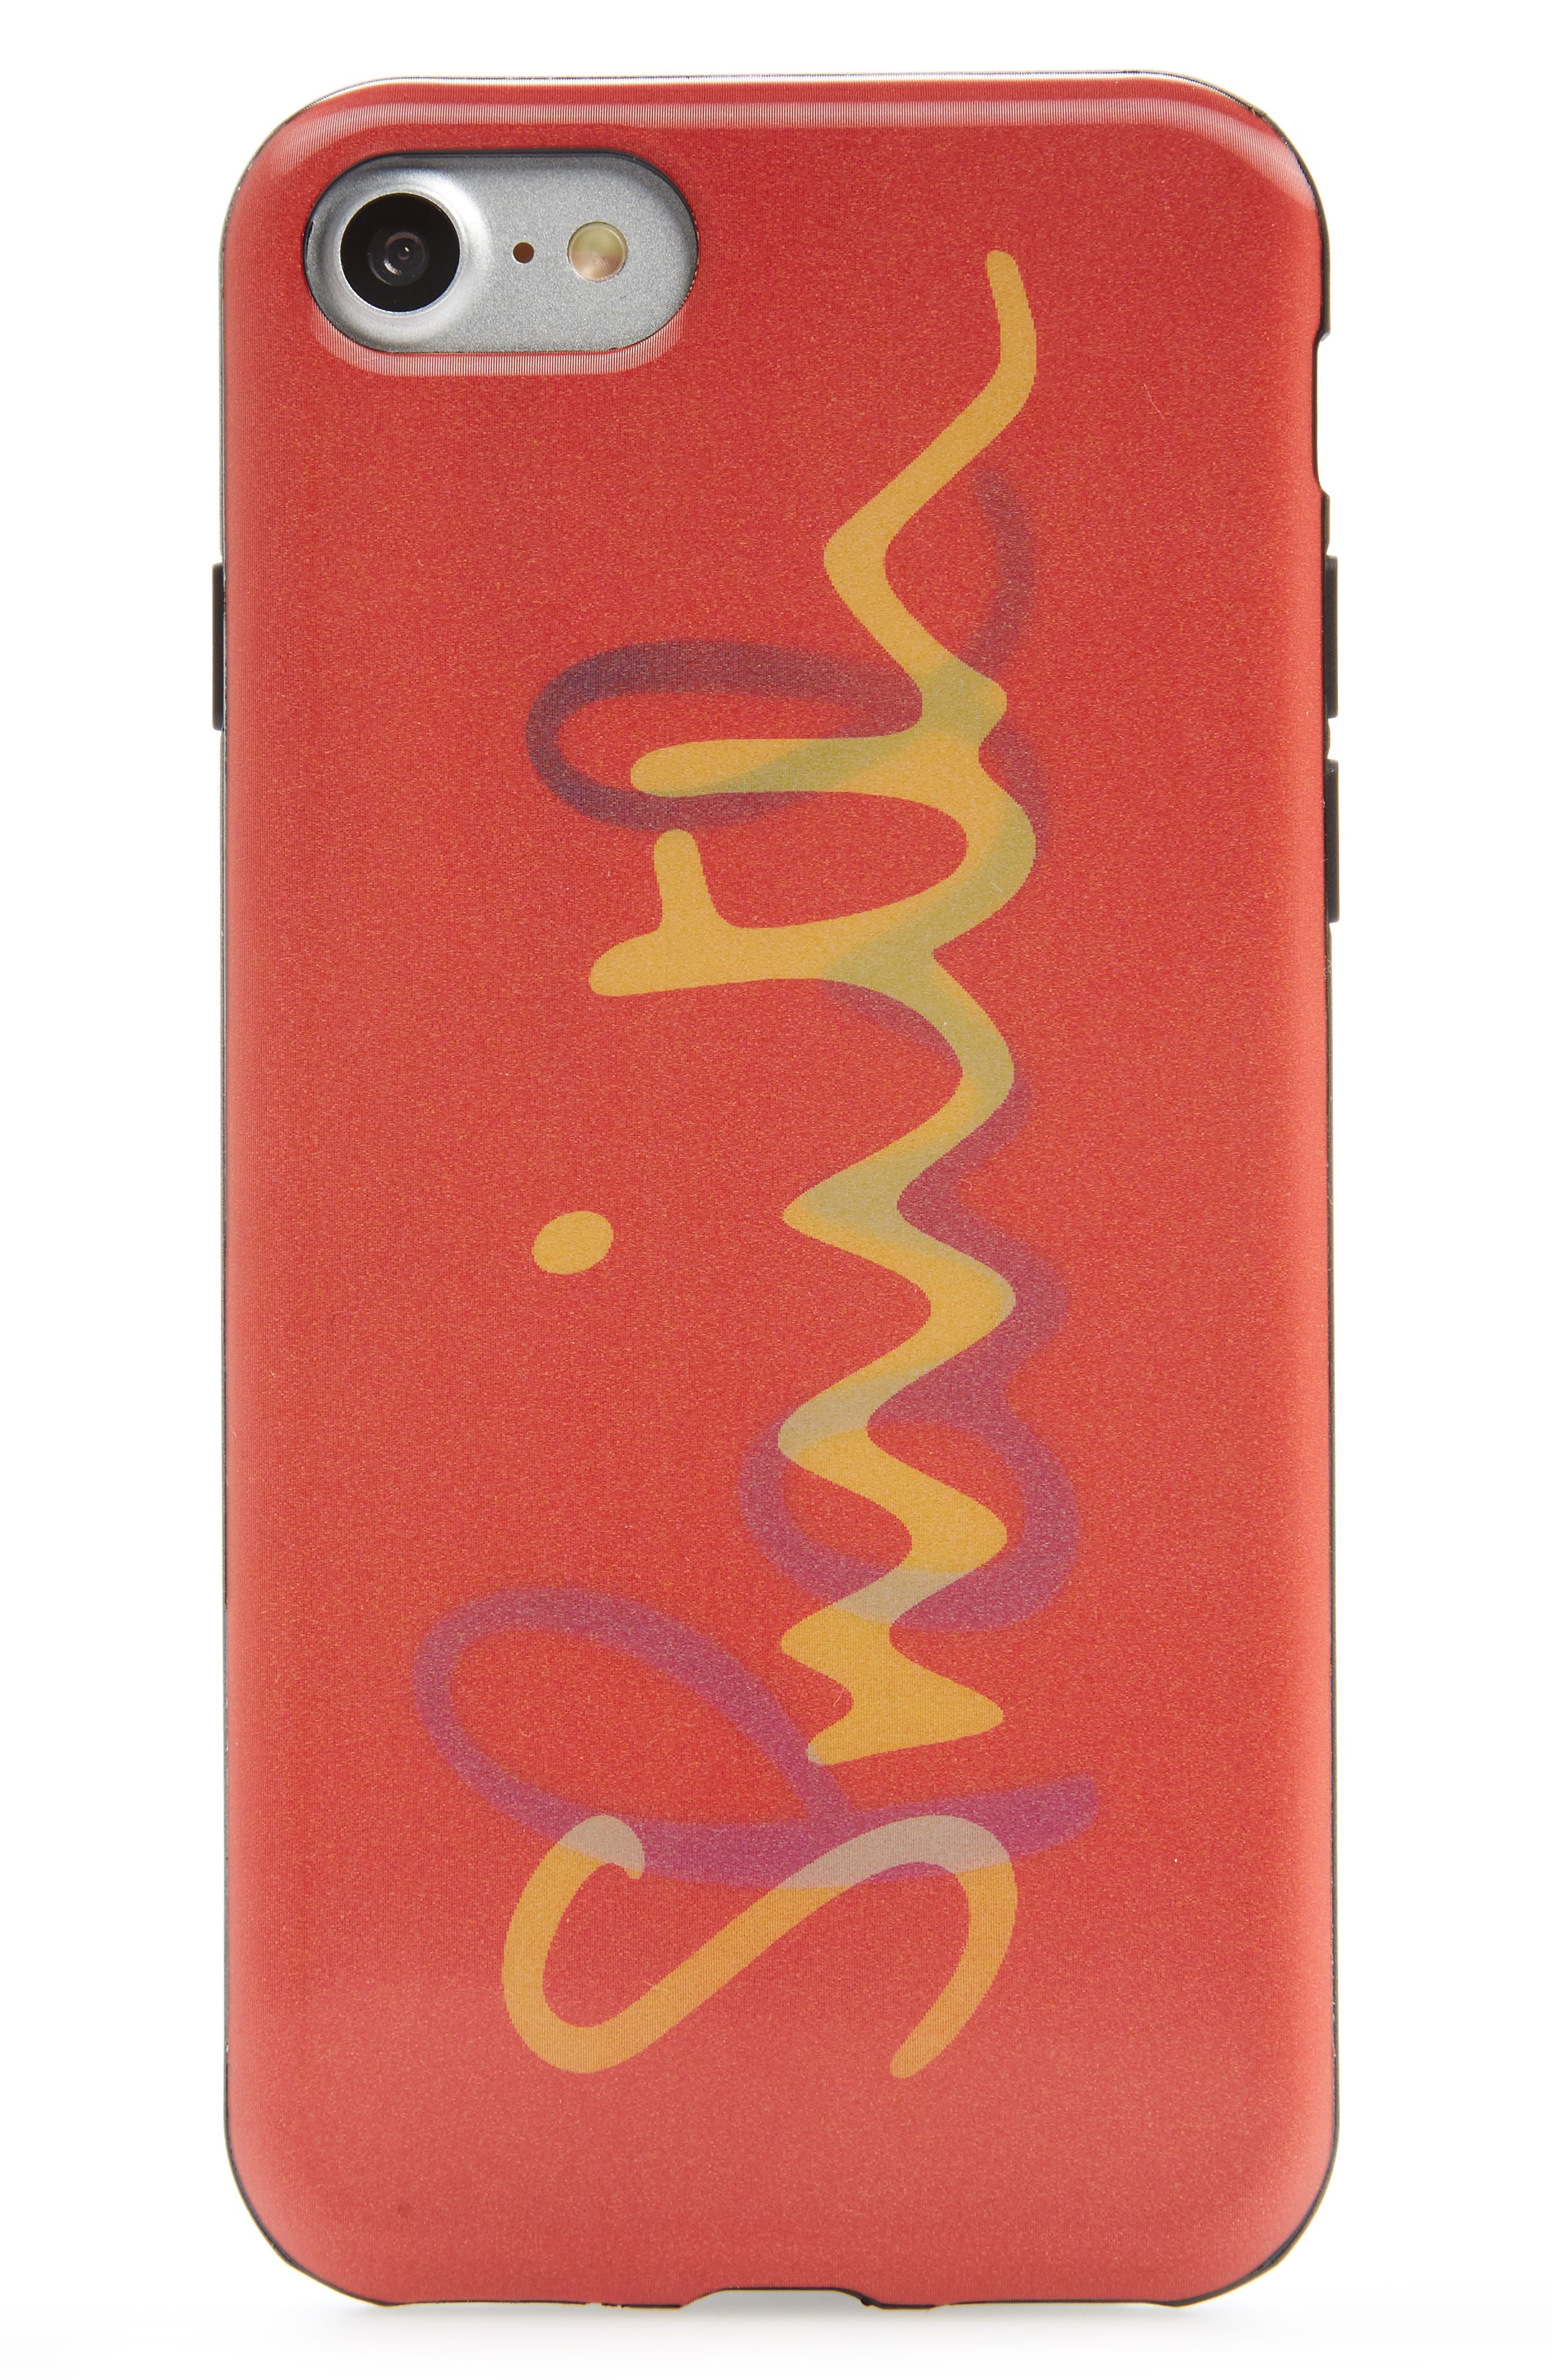 Paul Smith iPhone 7 Case